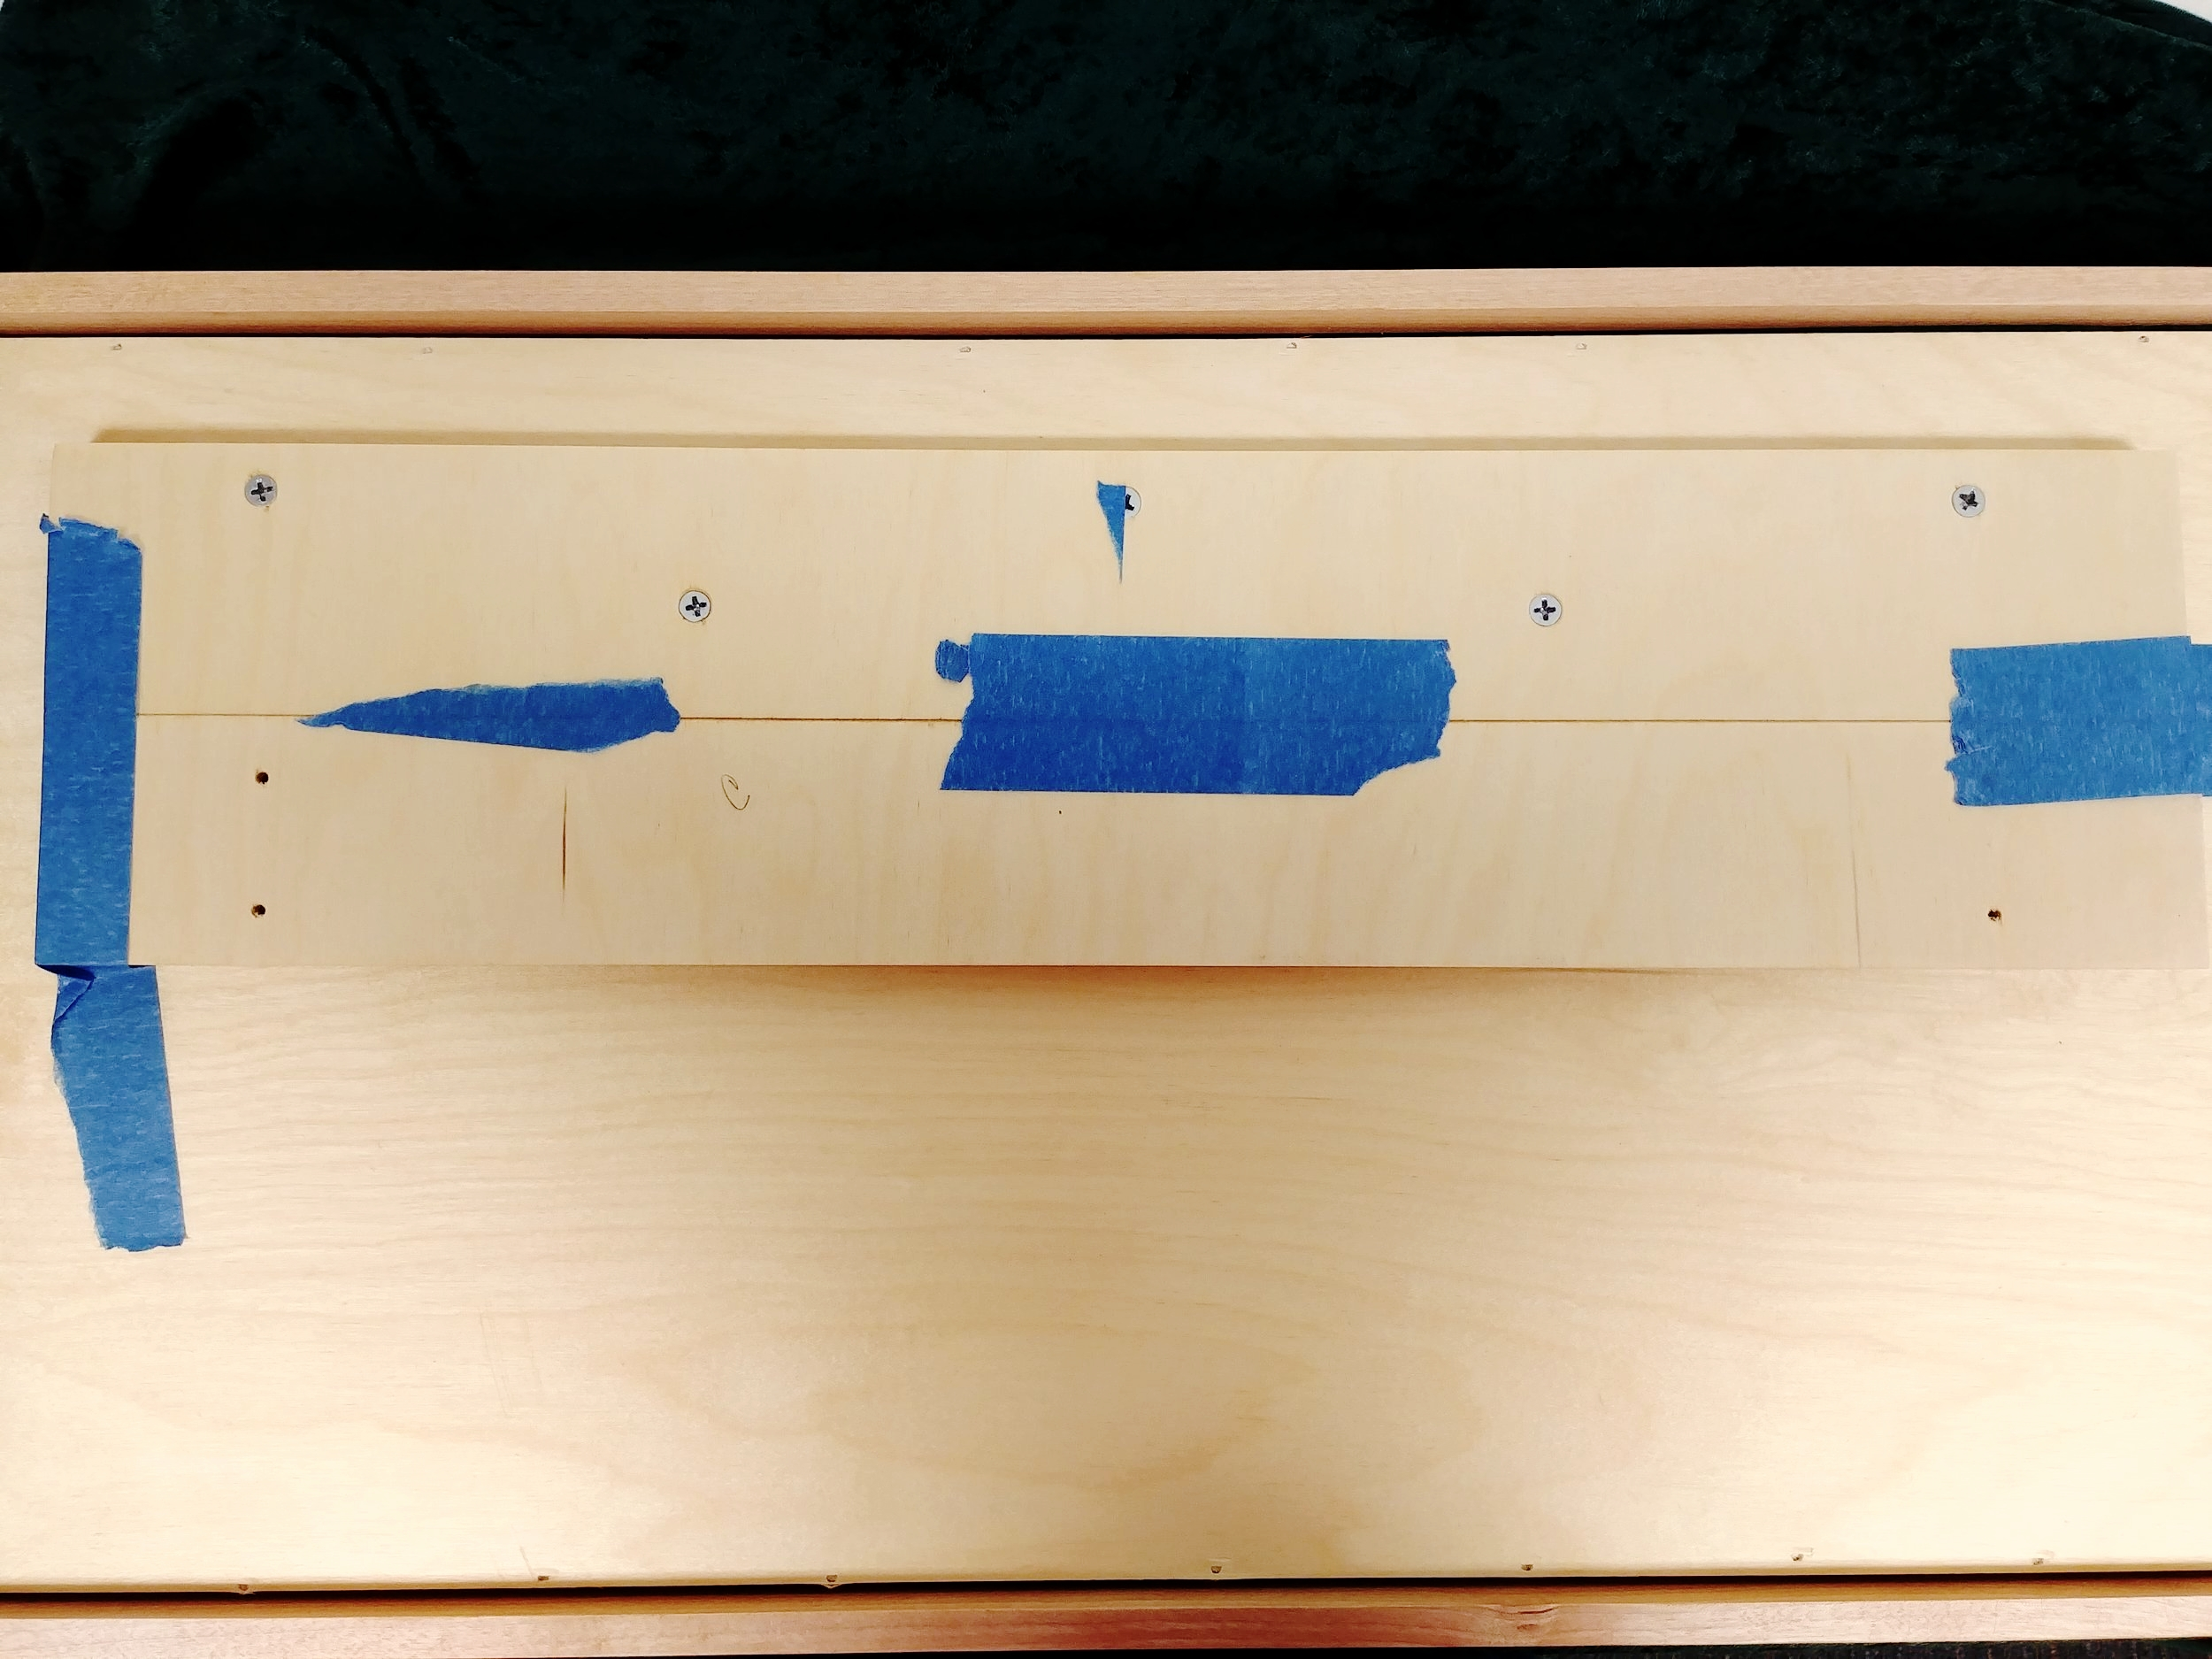 Figure 3 - Wall-Mount and Cleat Boards